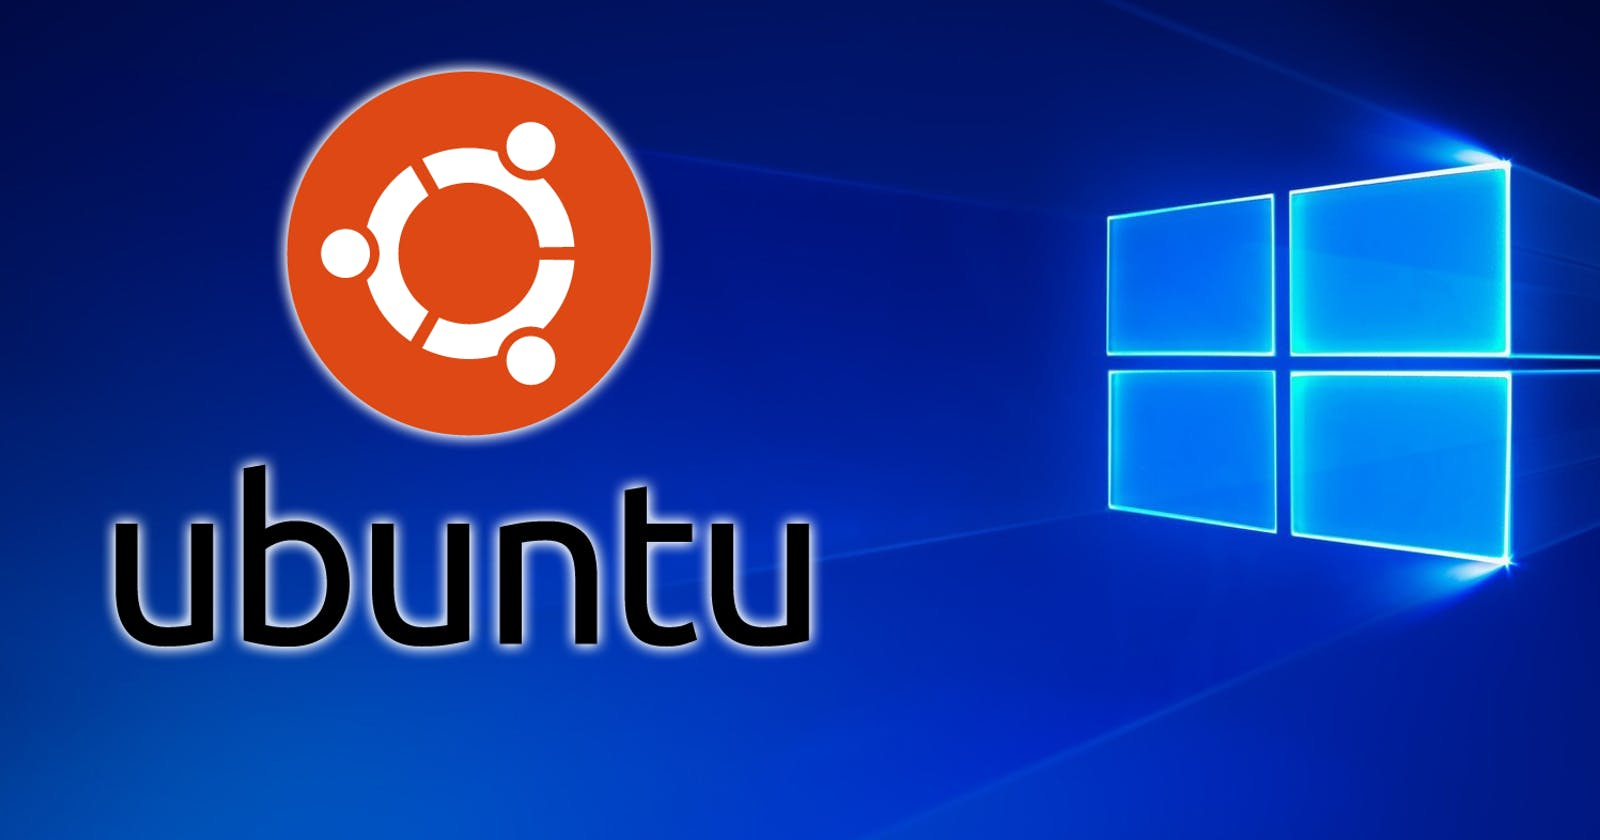 Setting up a new Linux distro (within Windows)